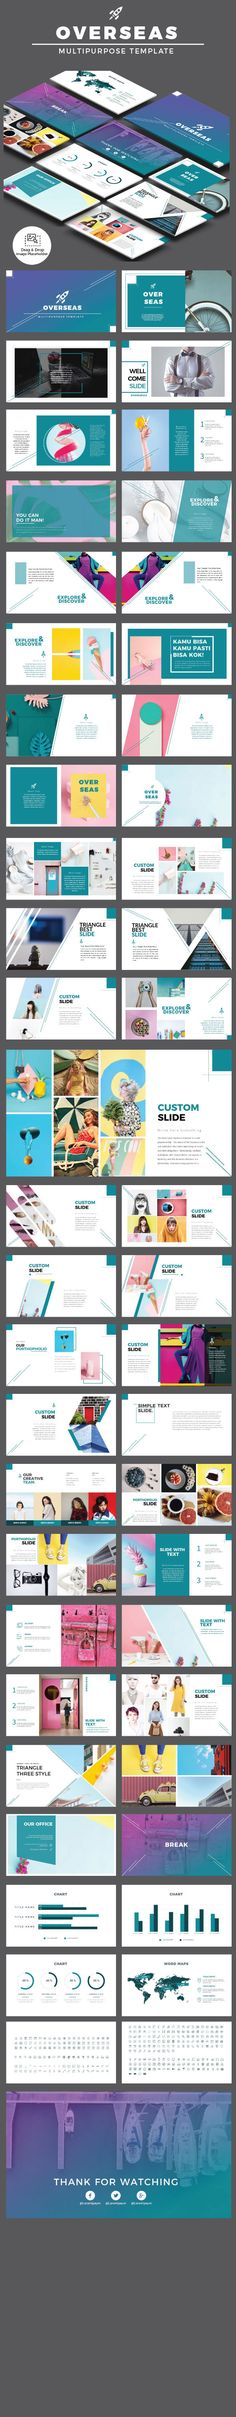 Overseas - Keynote Presentation Templates. Download: https://graphicriver.net/item/overseas-keynote-presentation-templates/19440169?ref=thanhdesign